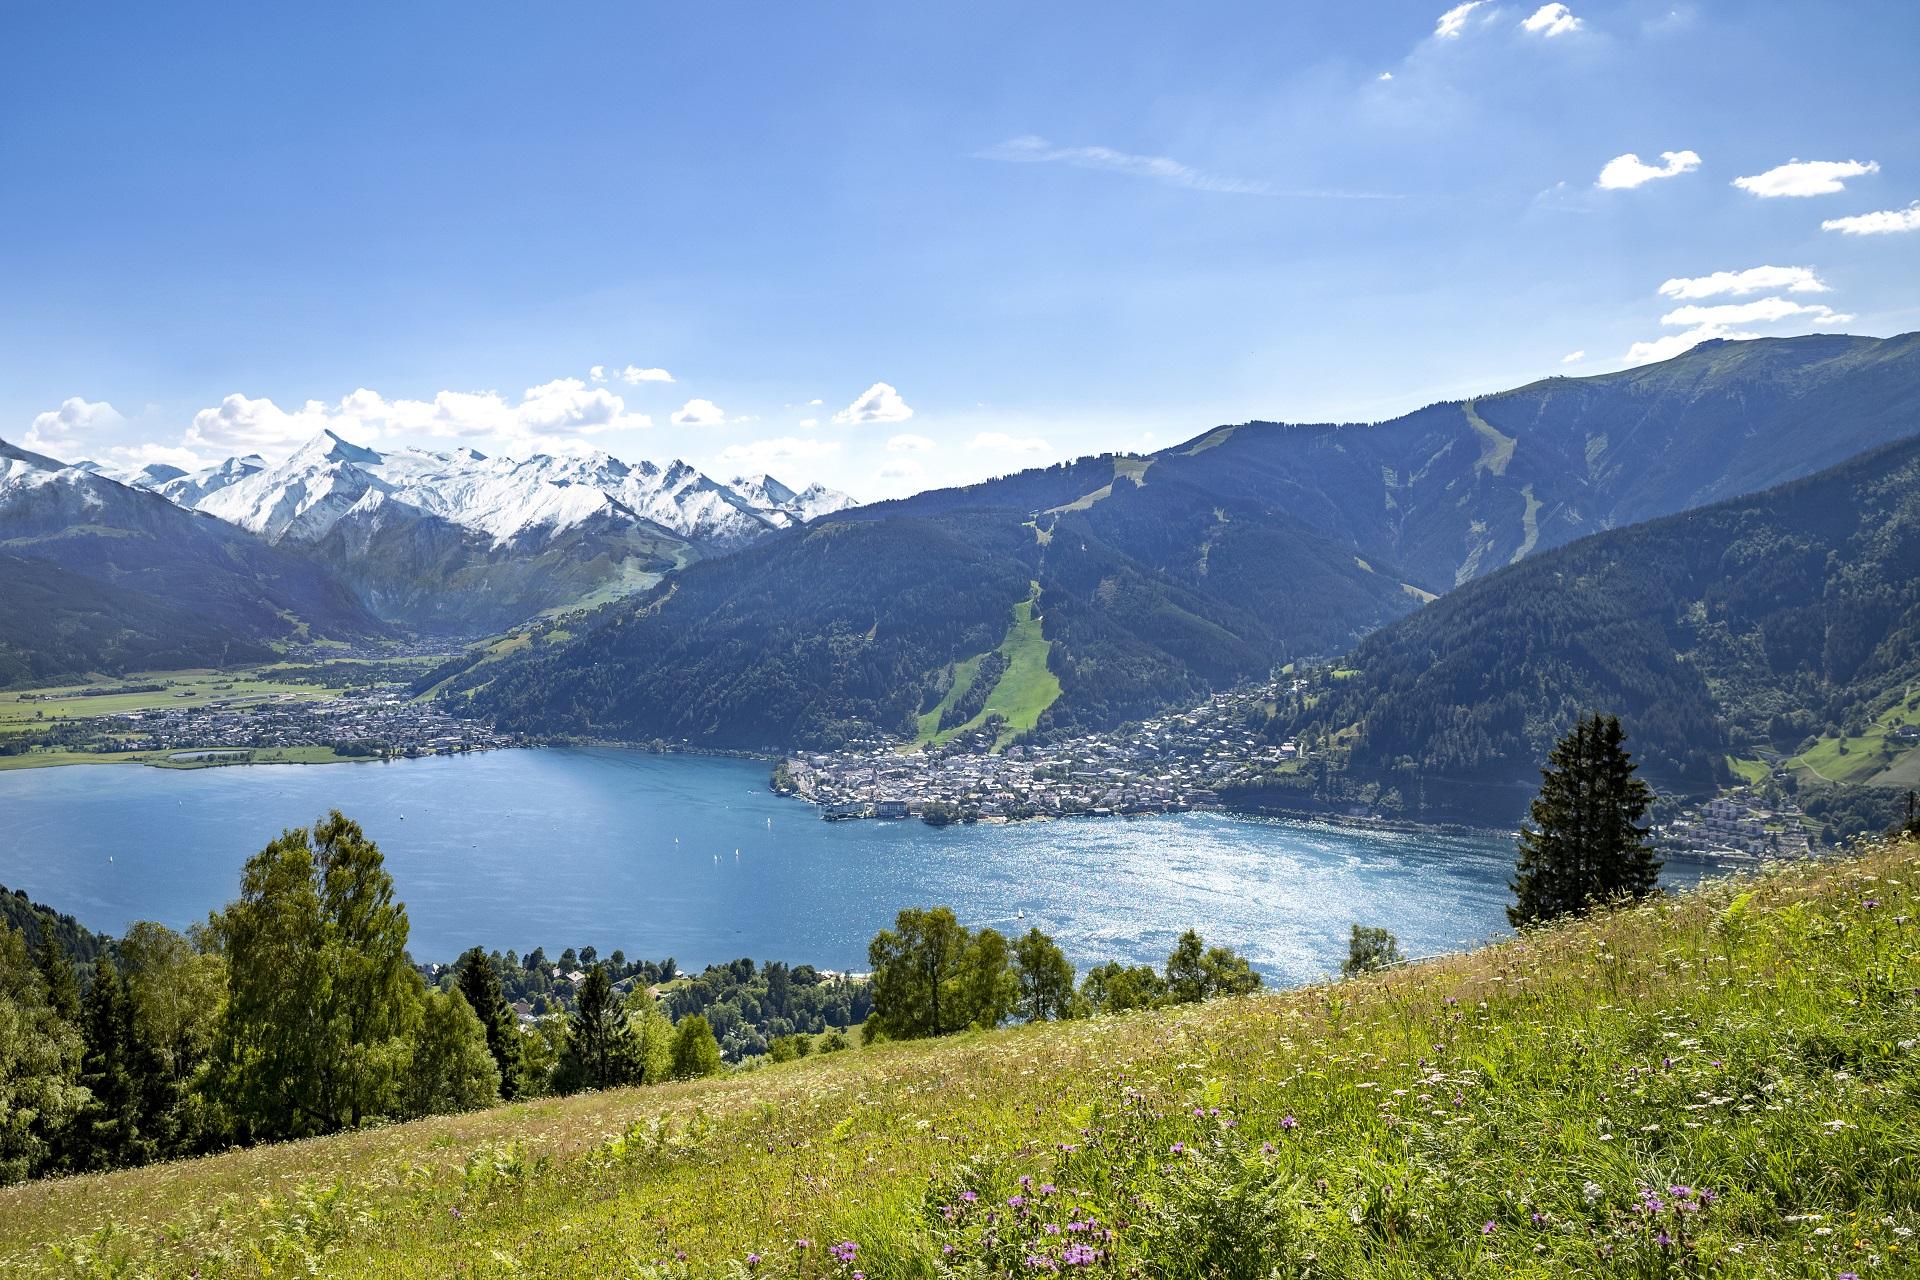 hauptmotiv-sommer-in-zell-am-see-kaprun-summer-in-zell-am-see-kaprun-c-nikolaus-faistauer-photography-header